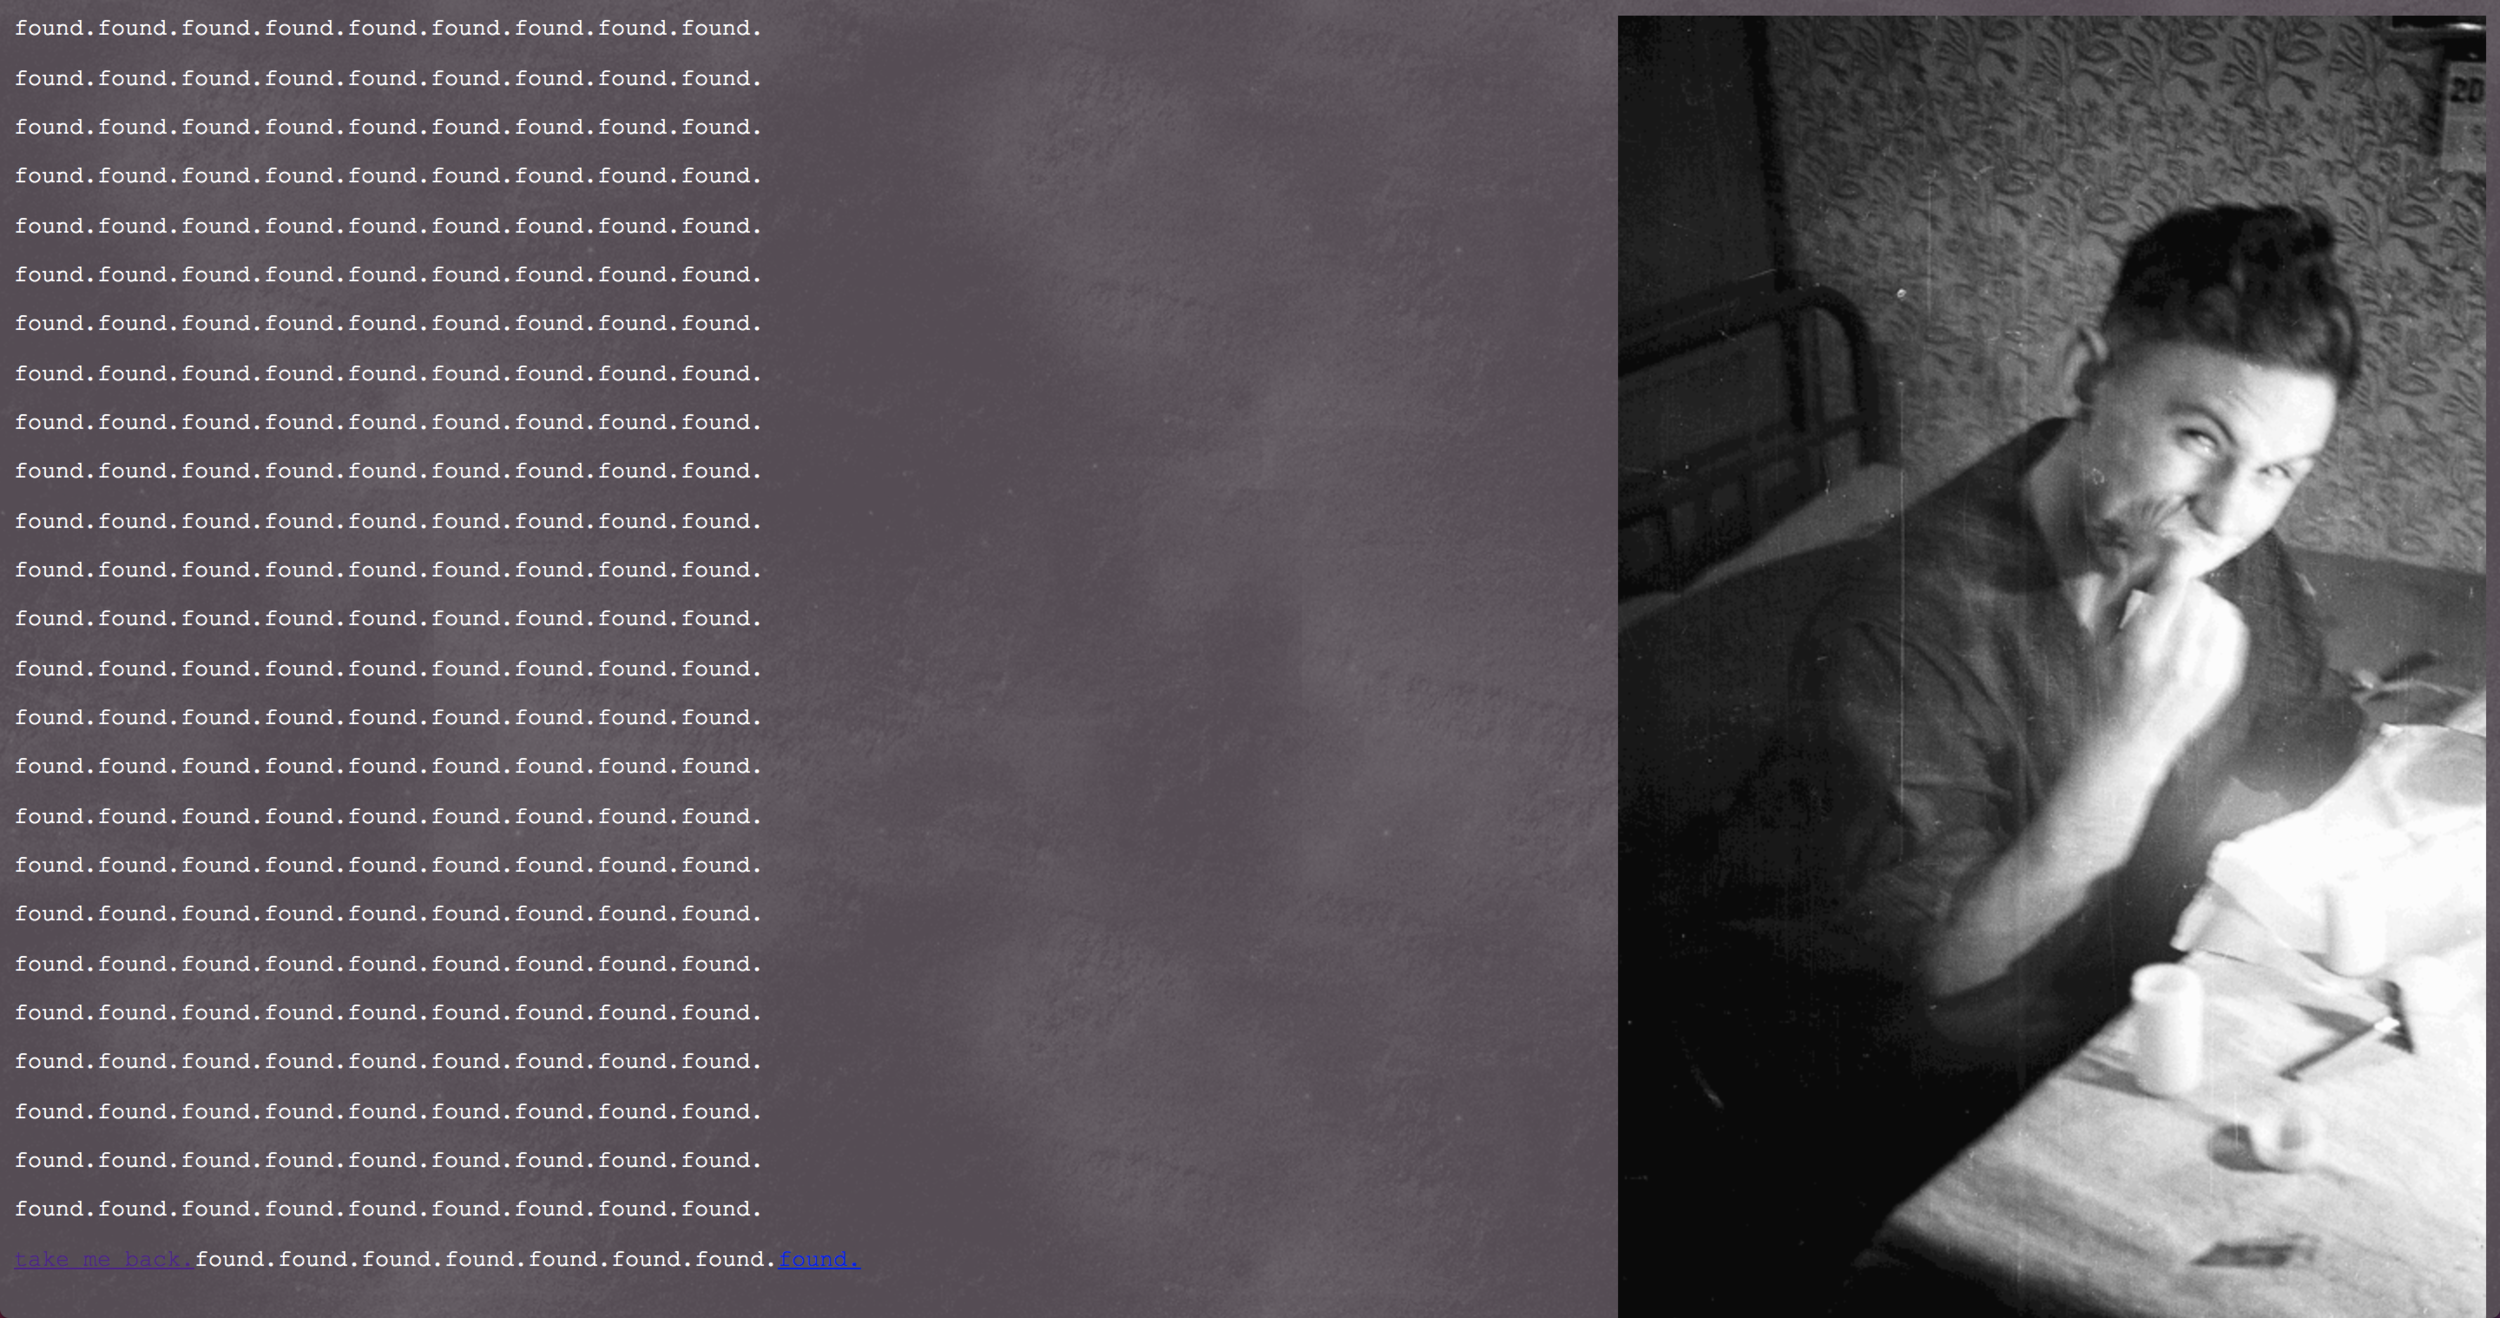 Branching text-story and gif series. Images from archival record of the Dyatlov Pass students.